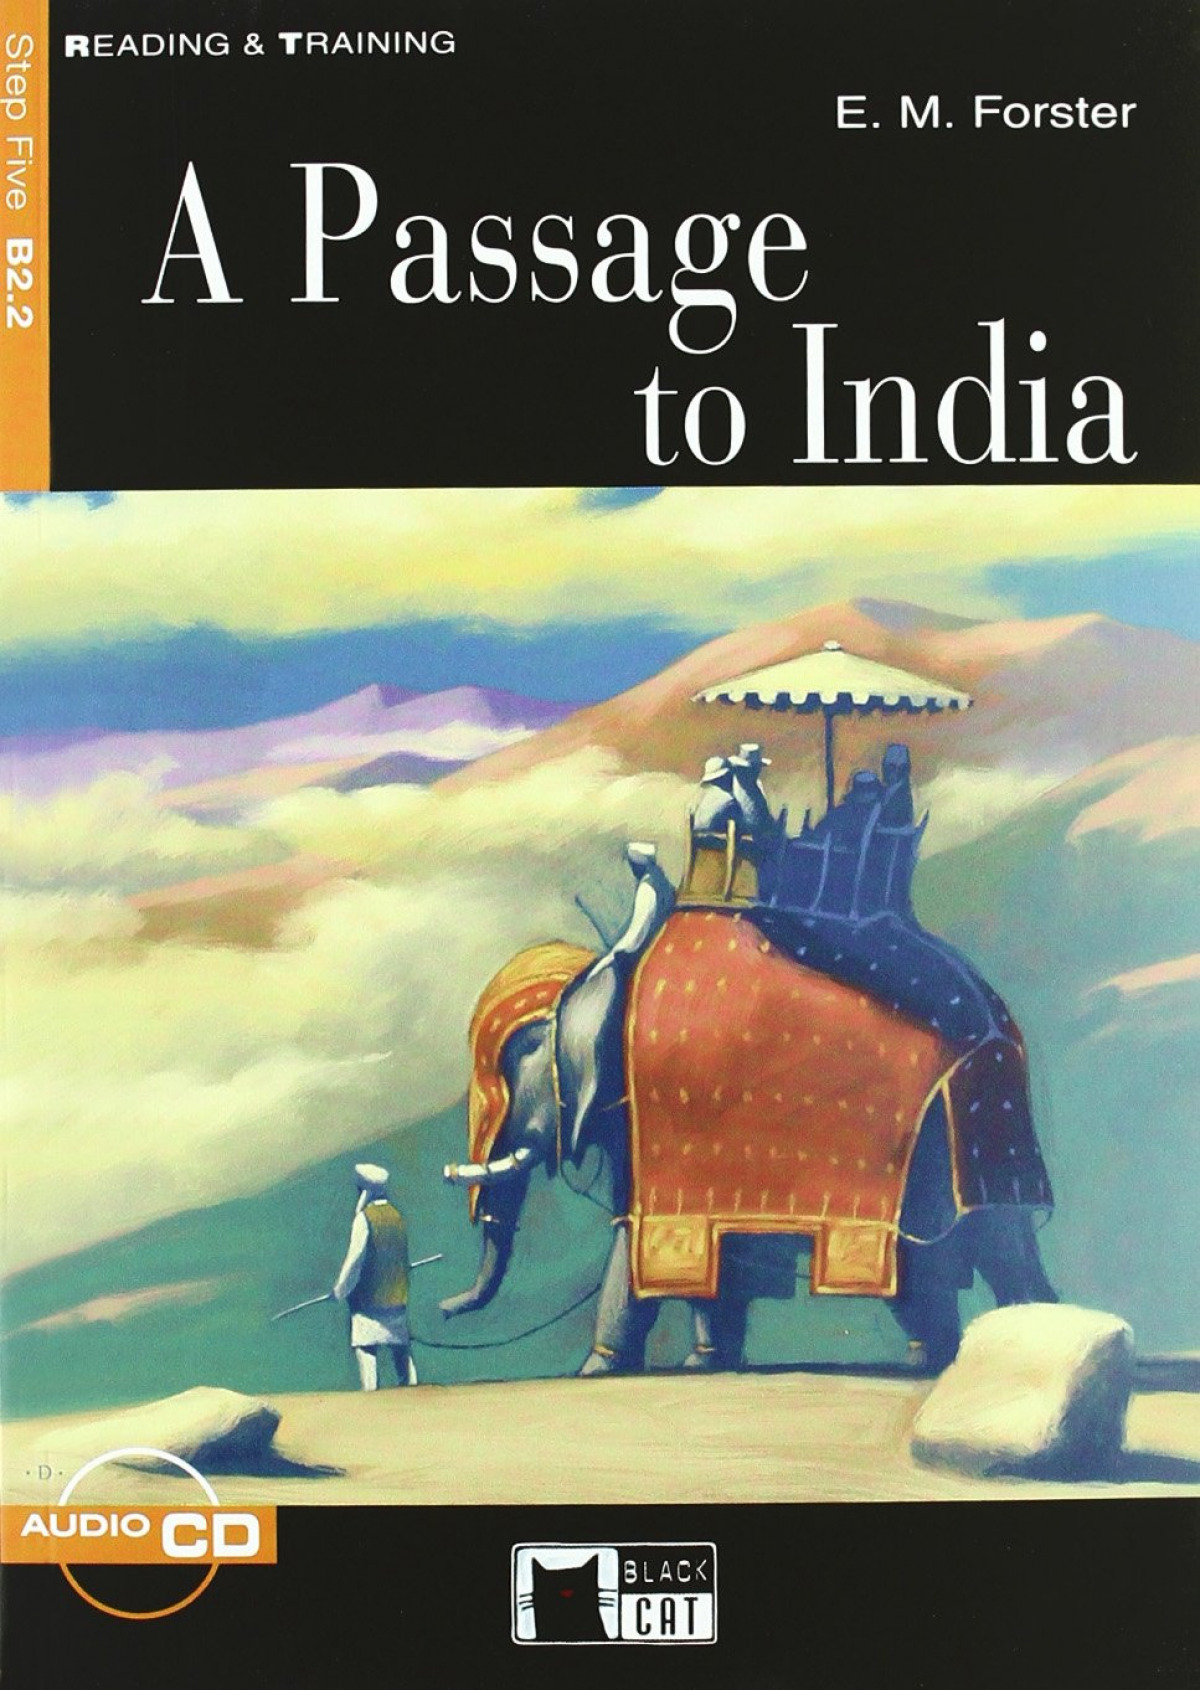 (interm)/passage to india,a (+cd)./reading & training - Foster